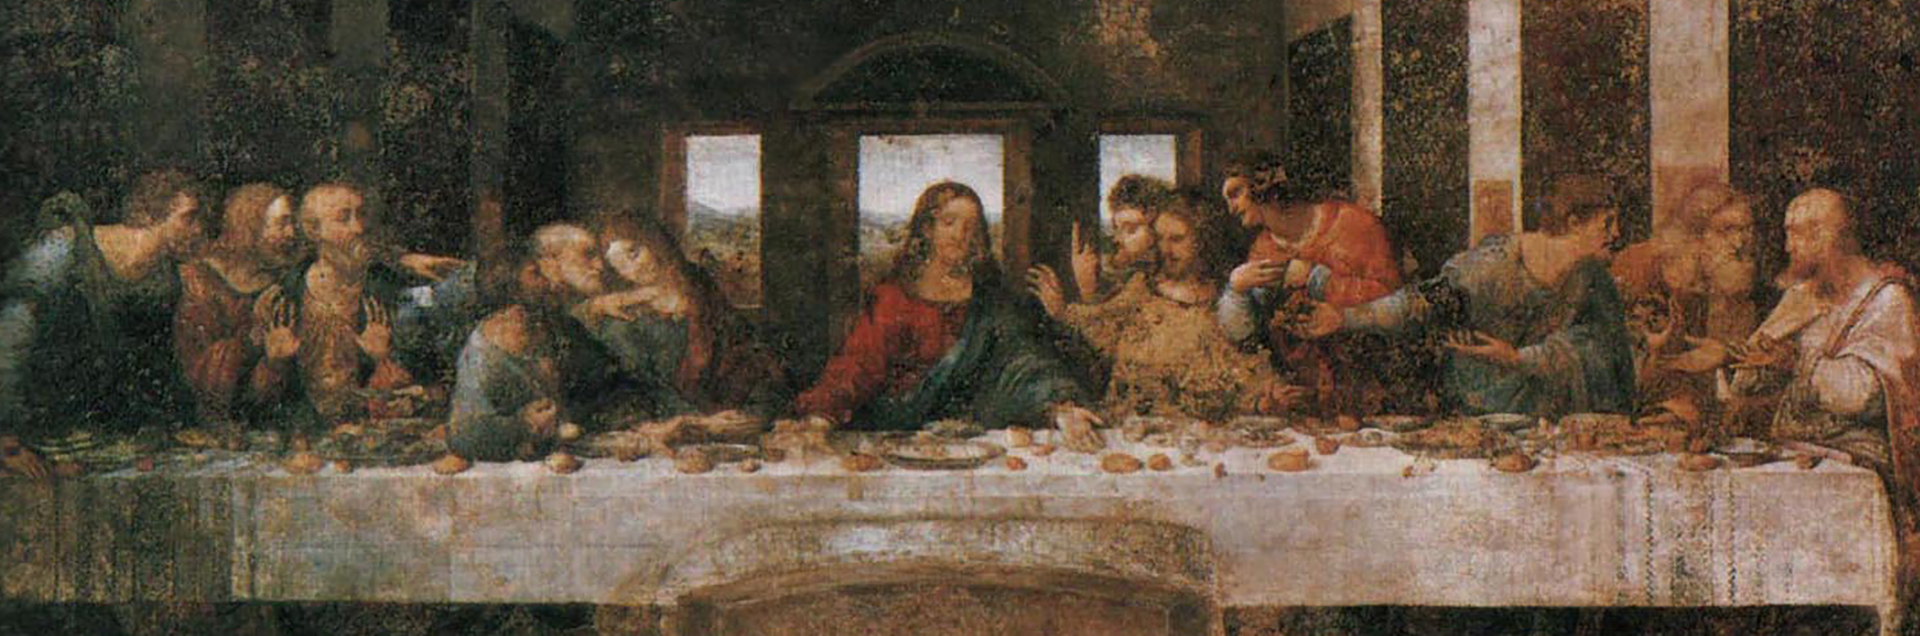 Image result for the last supper